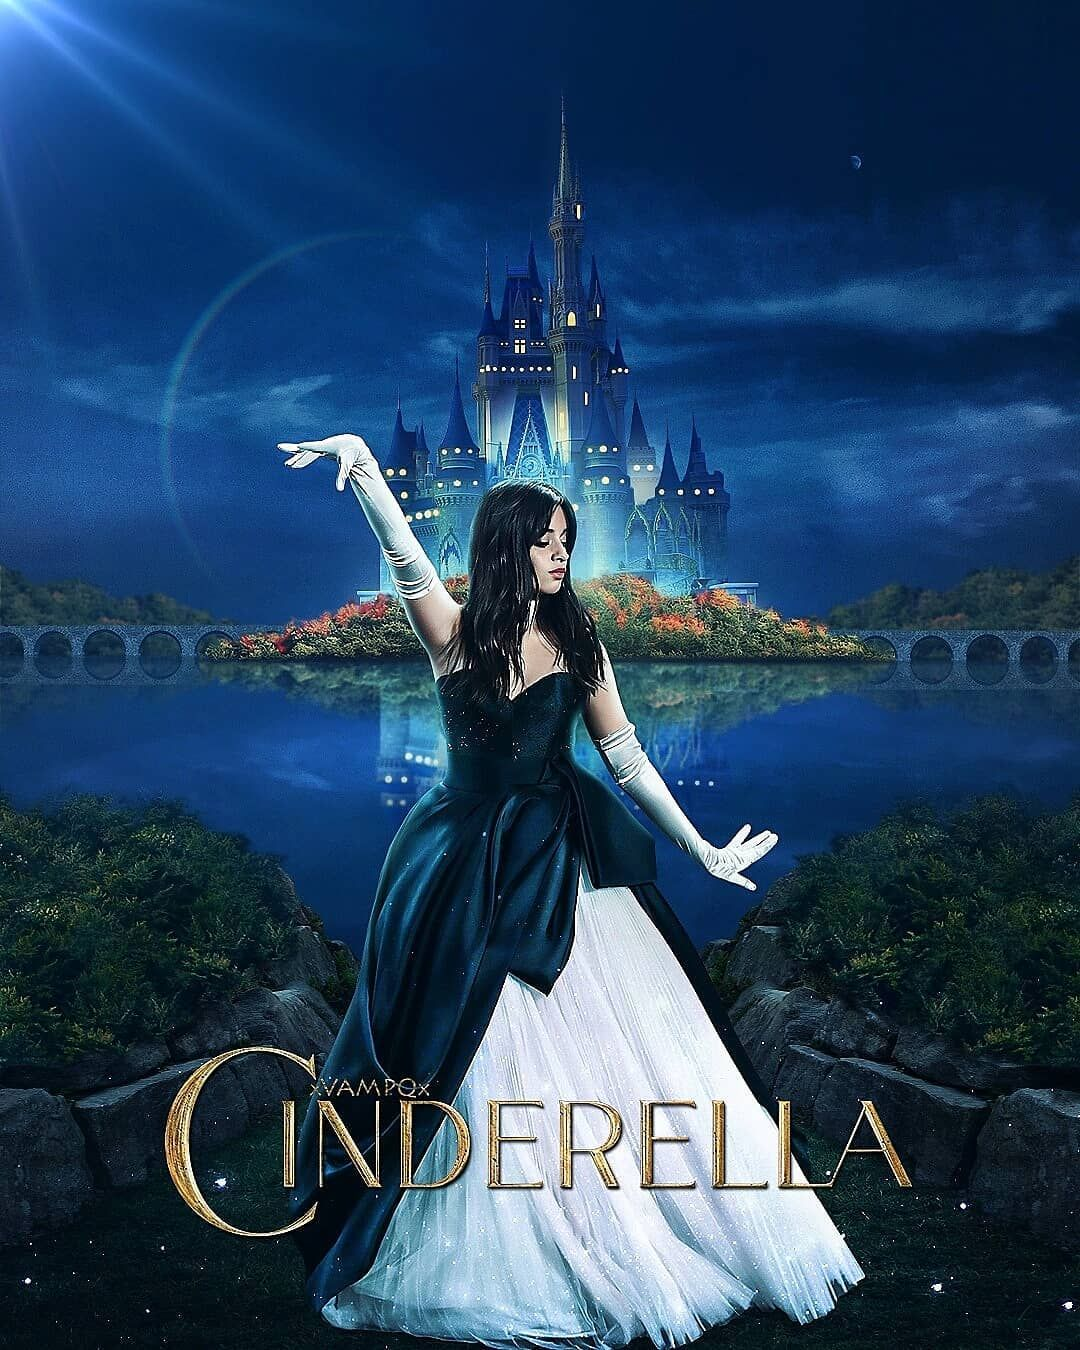 Cinderella 2021 Movie Poster - posters - posters